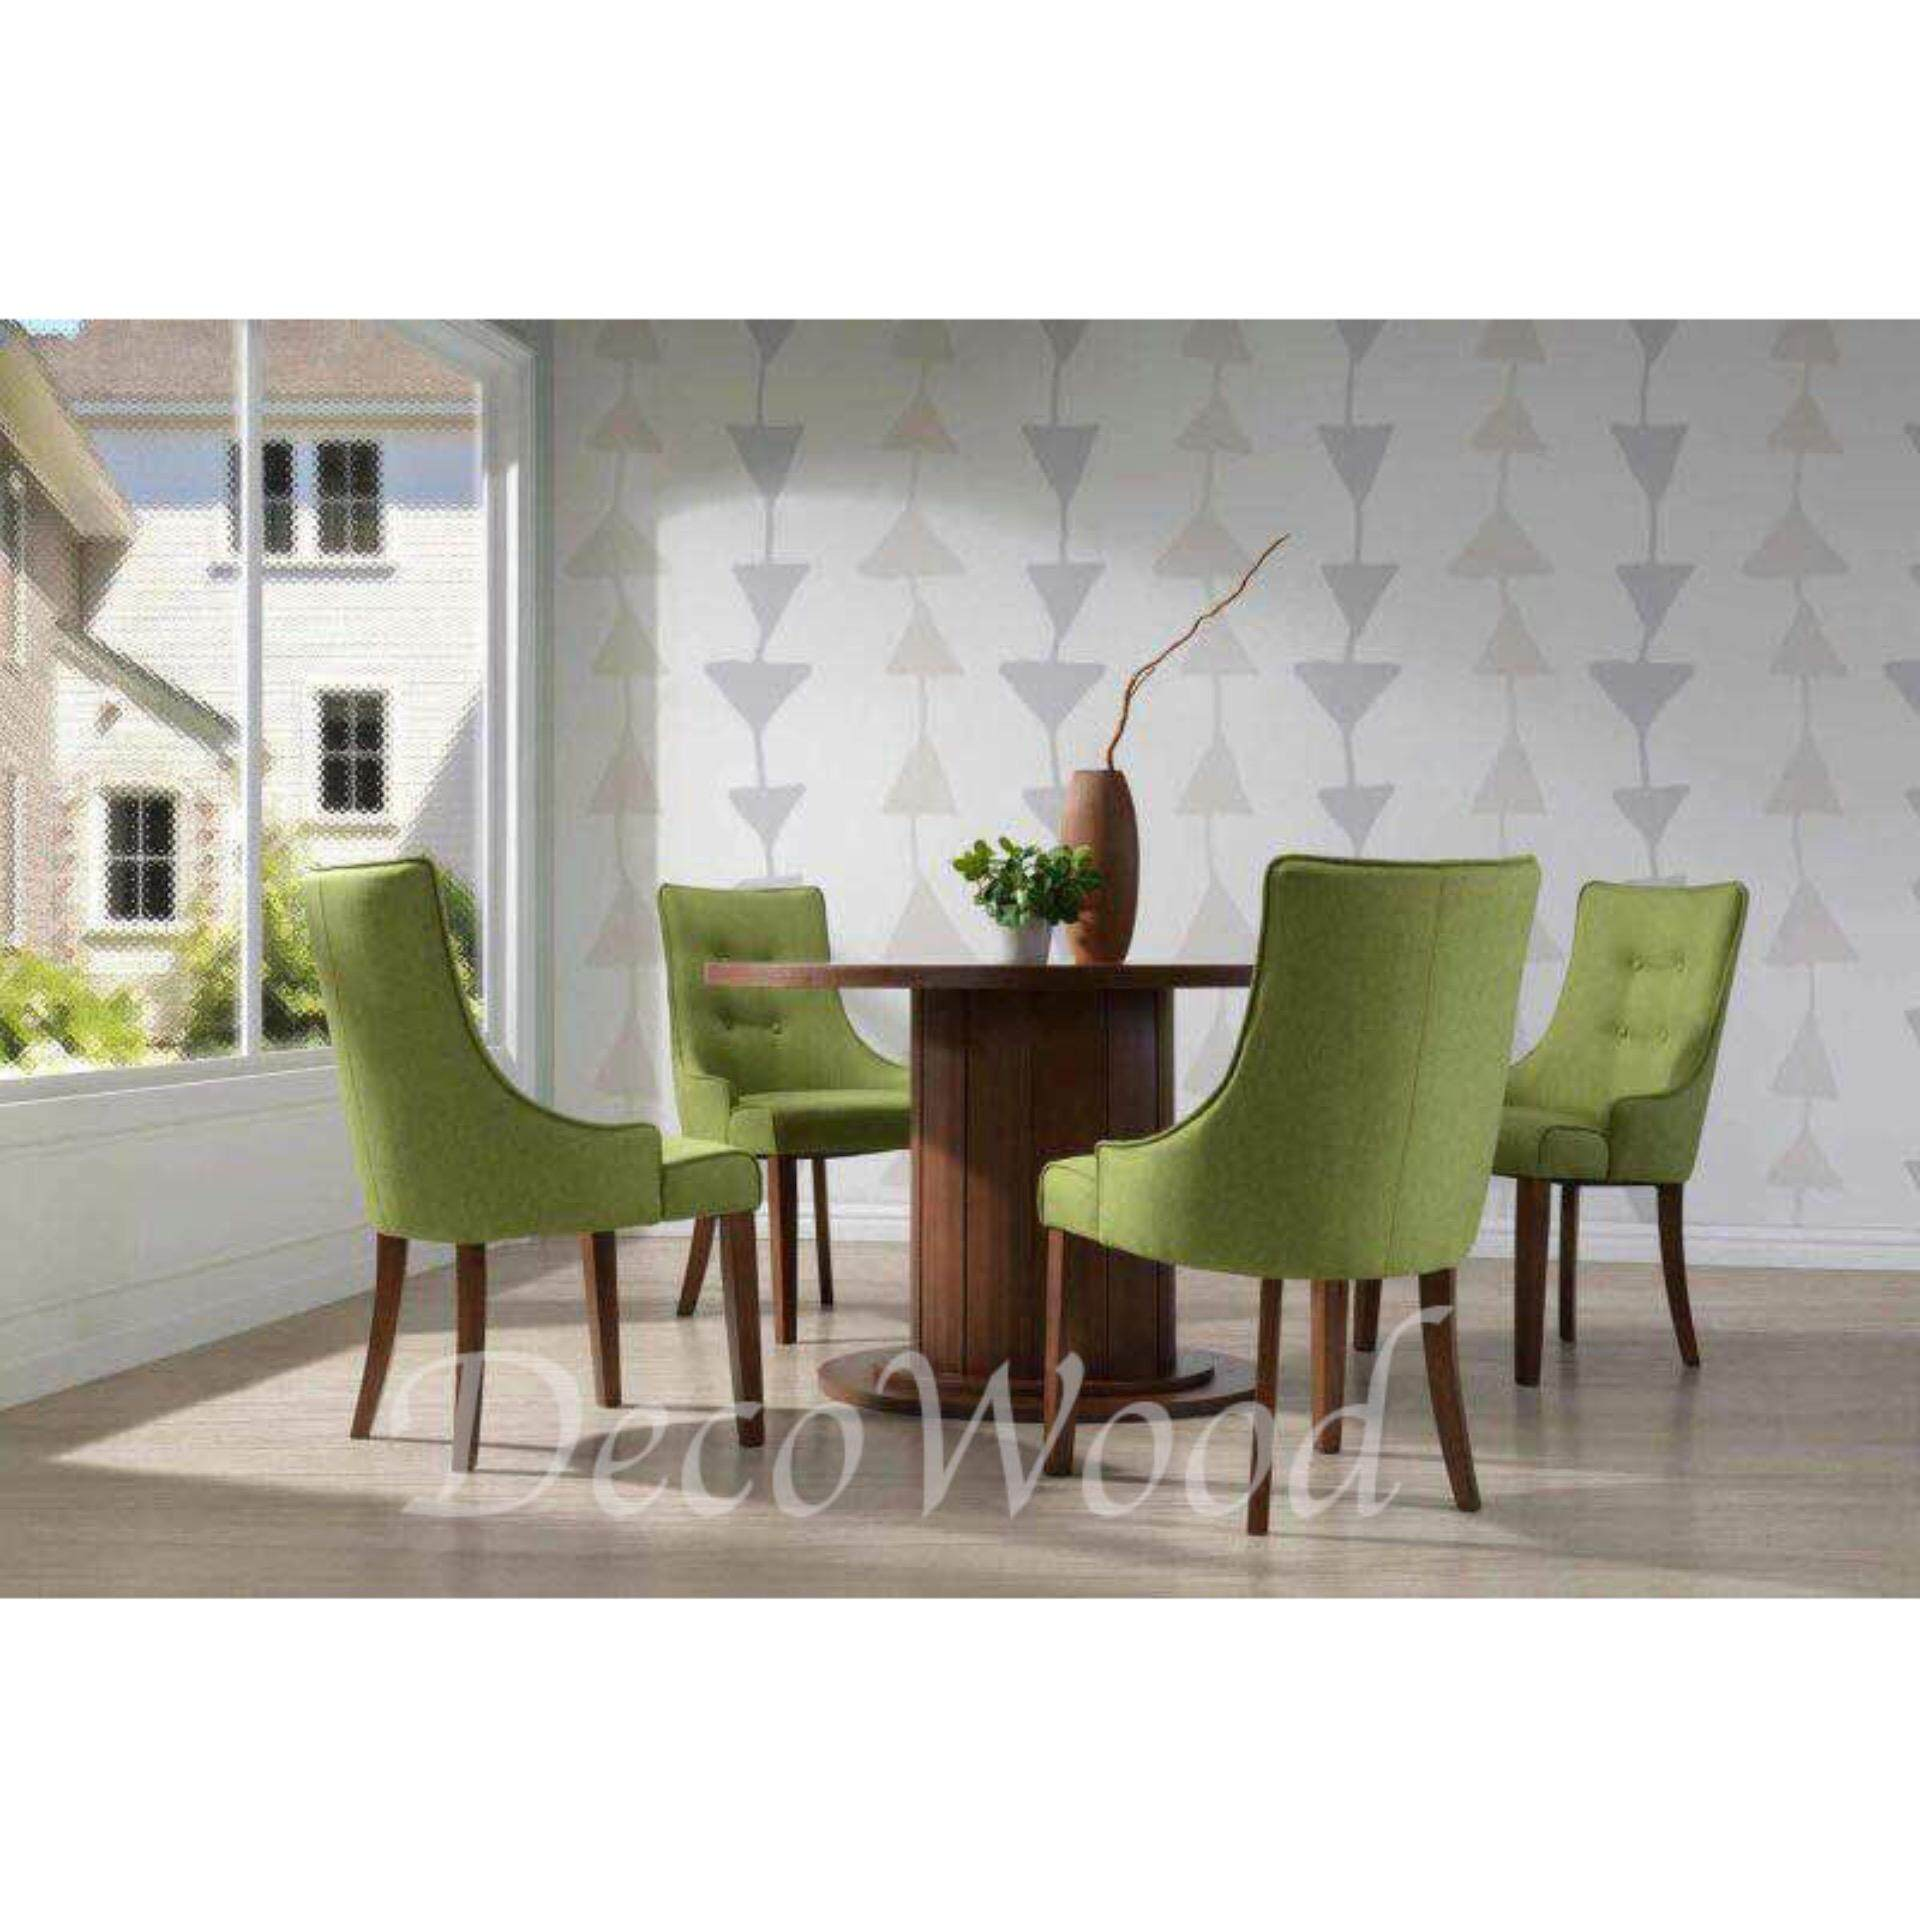 Solid Wood 1 Round Dining Table + 4 Cushion Chair Dining Set Breakfast Lunch Dinner Set(Green Color) L1200MM X W1200MM X H750MM Pre Order 2 Week